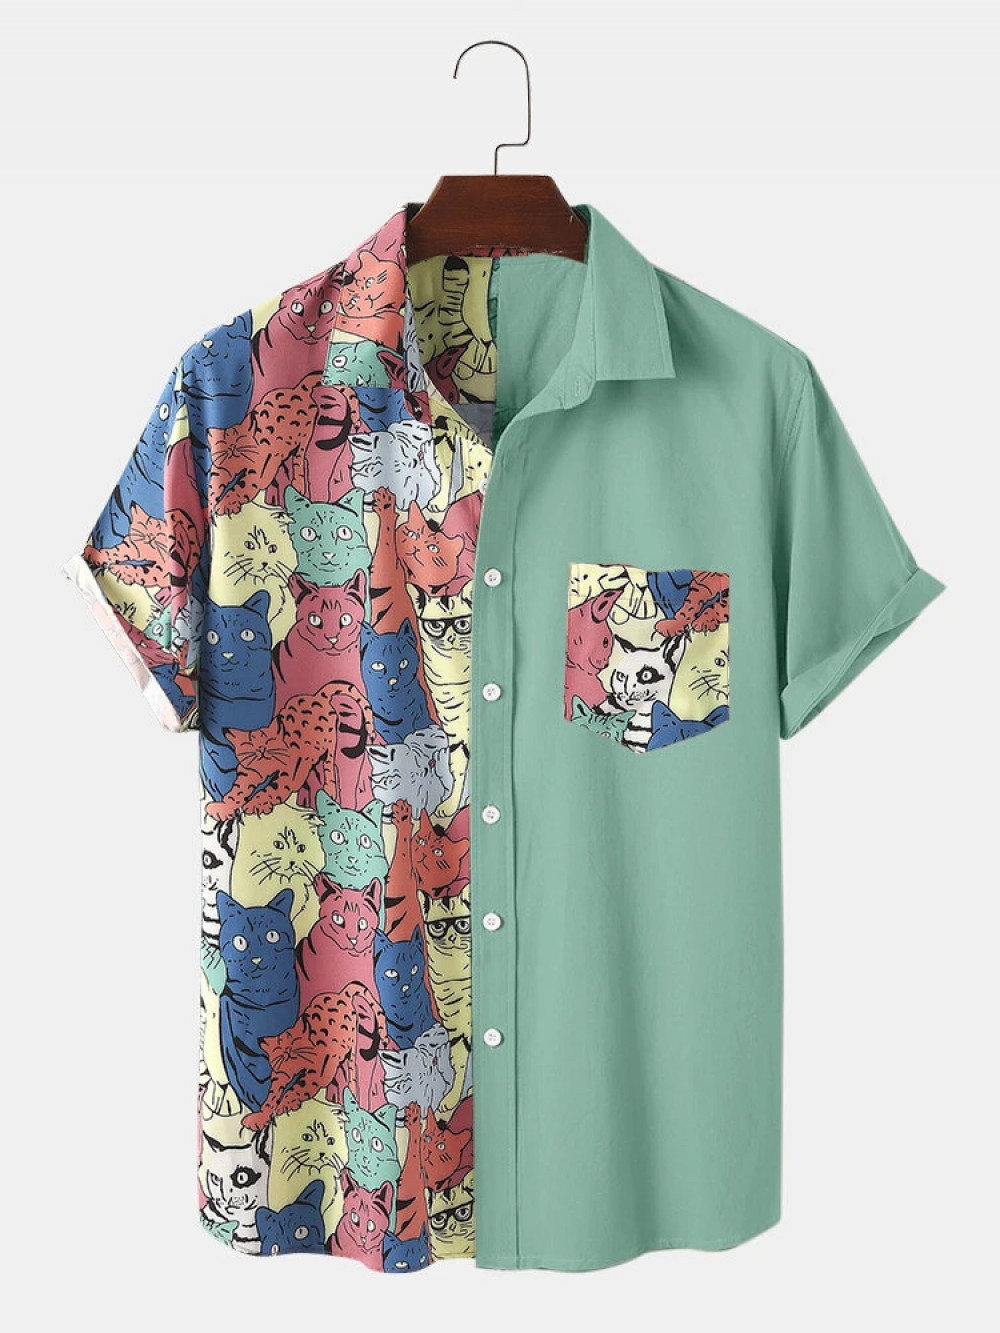 Blushing Funny Cartoon color Cat Print Chest Pocket Short Sleeve Shirt